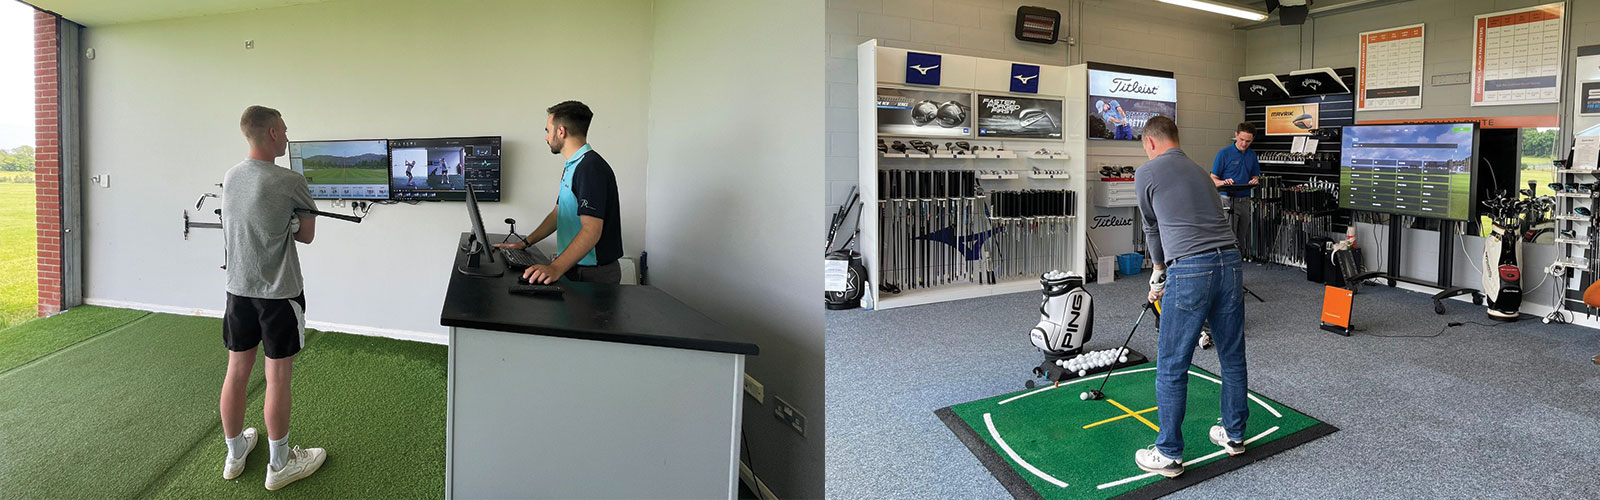 golf lessons or custom fitting blog post   Peter Field Golf Shop, Norwich